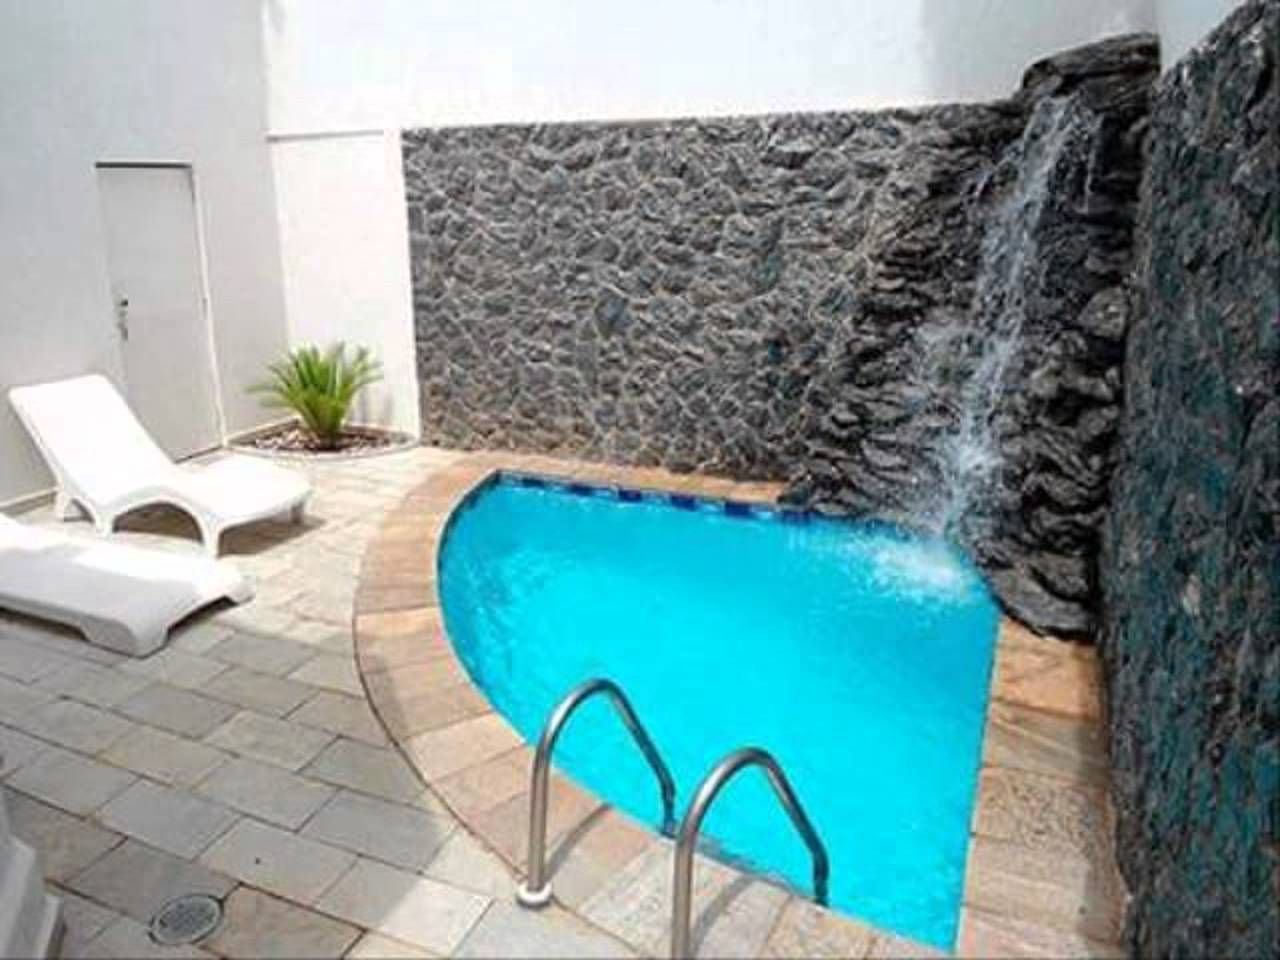 Pool Home Small Swimming Idea Mini Design Ideas Latest